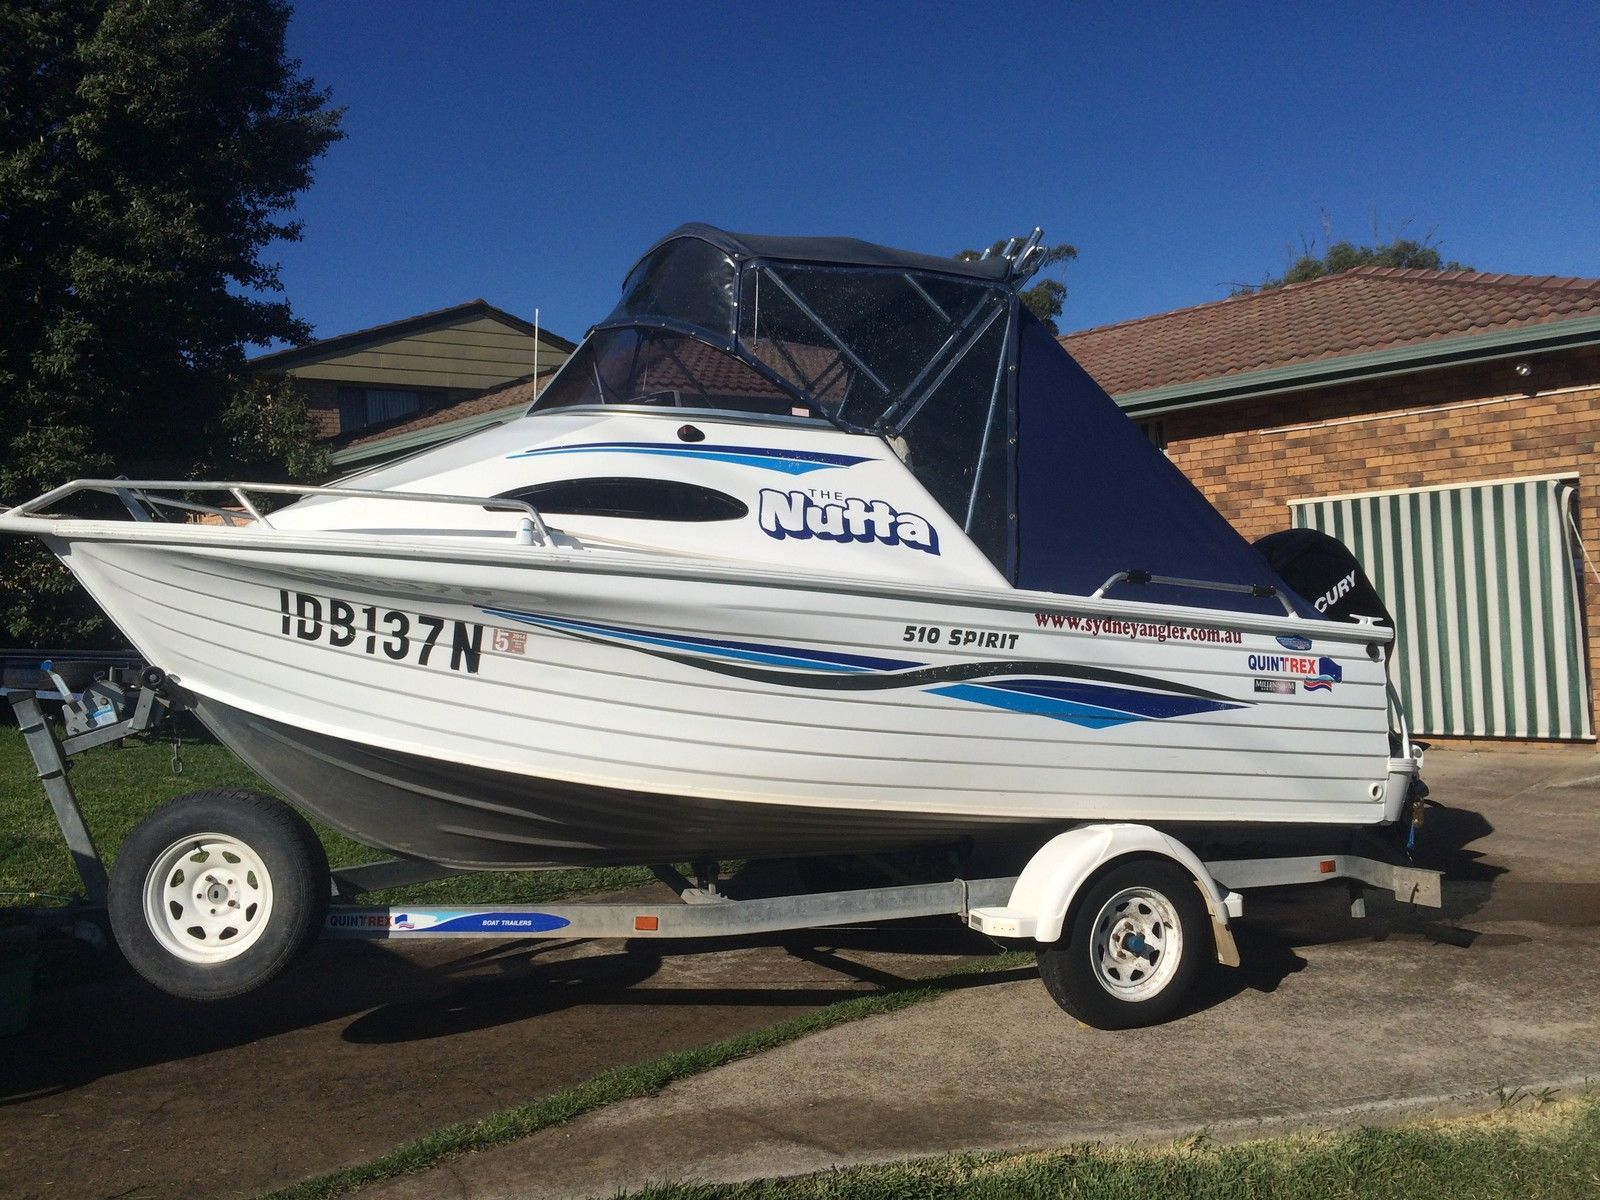 2008 Model Quintrex 510 Spirit